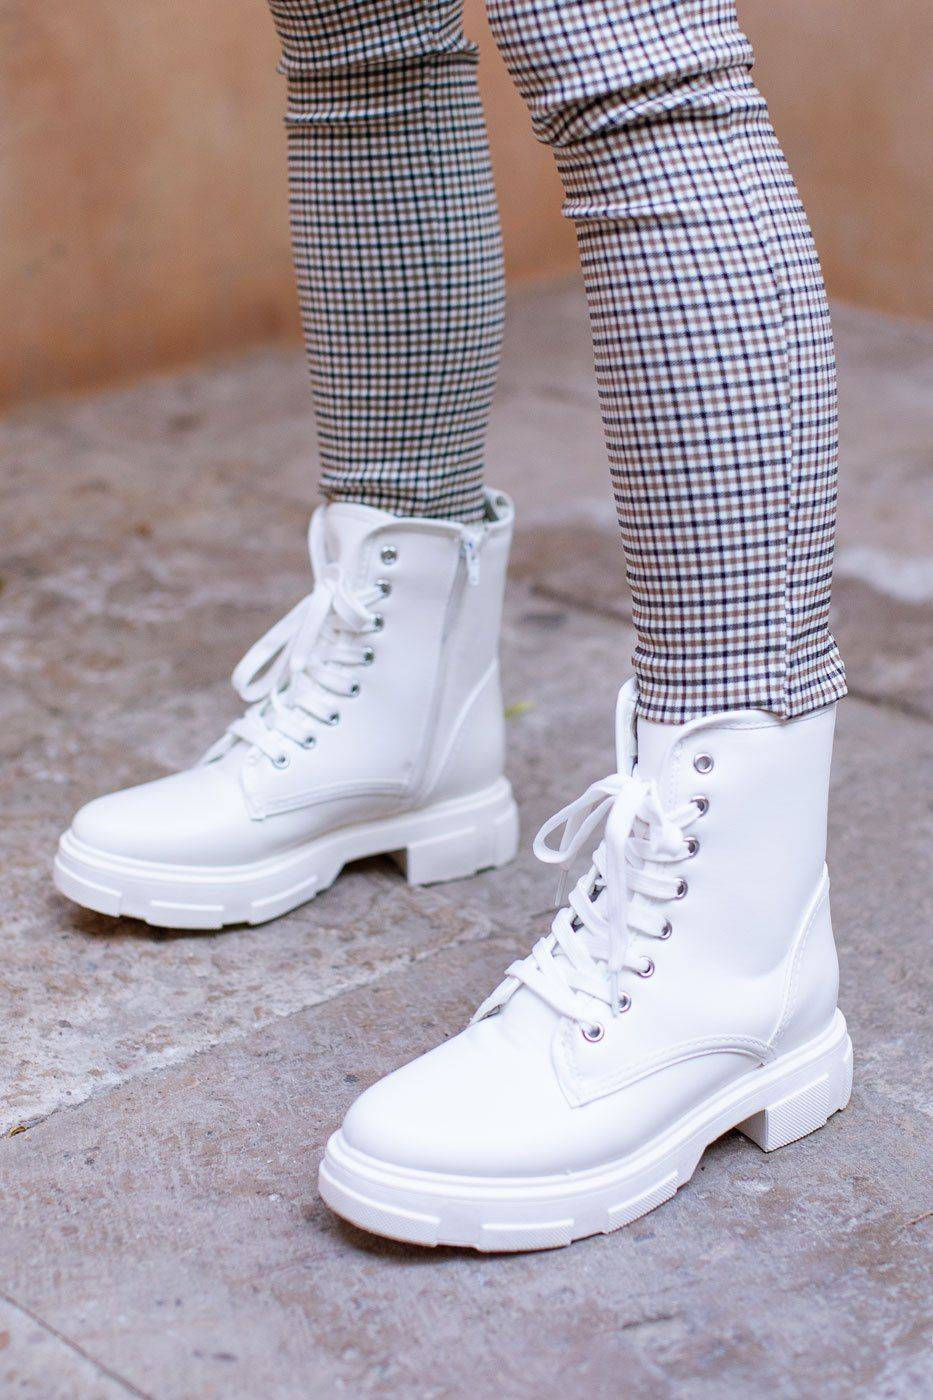 Bamboo Get Together White Boots  - H1558 WHITE 10